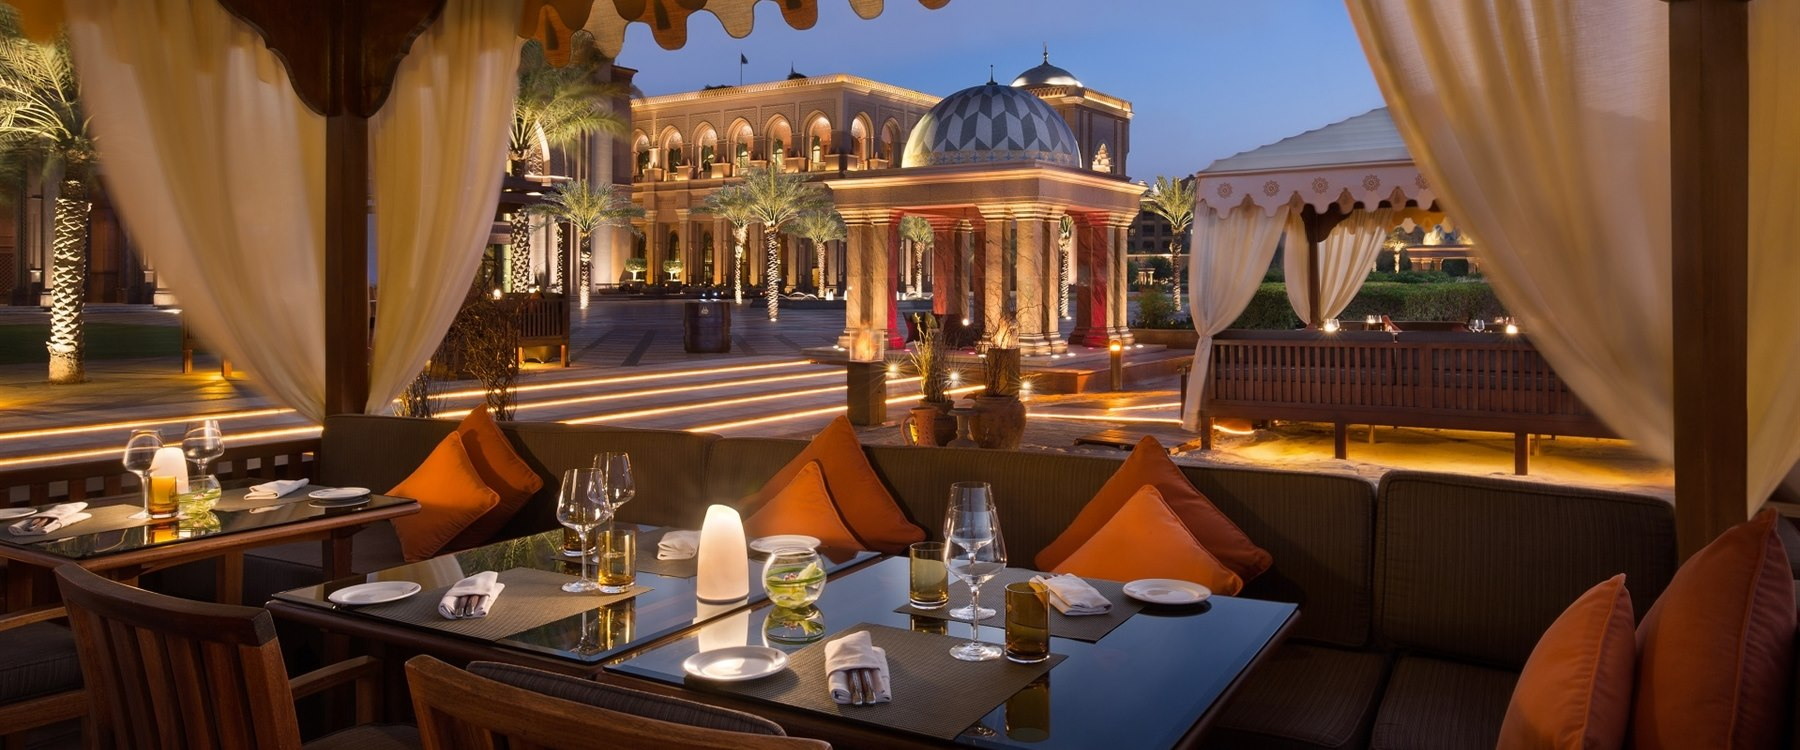 BBQ Al Qasr at Emirates Palace, Abu Dhabi